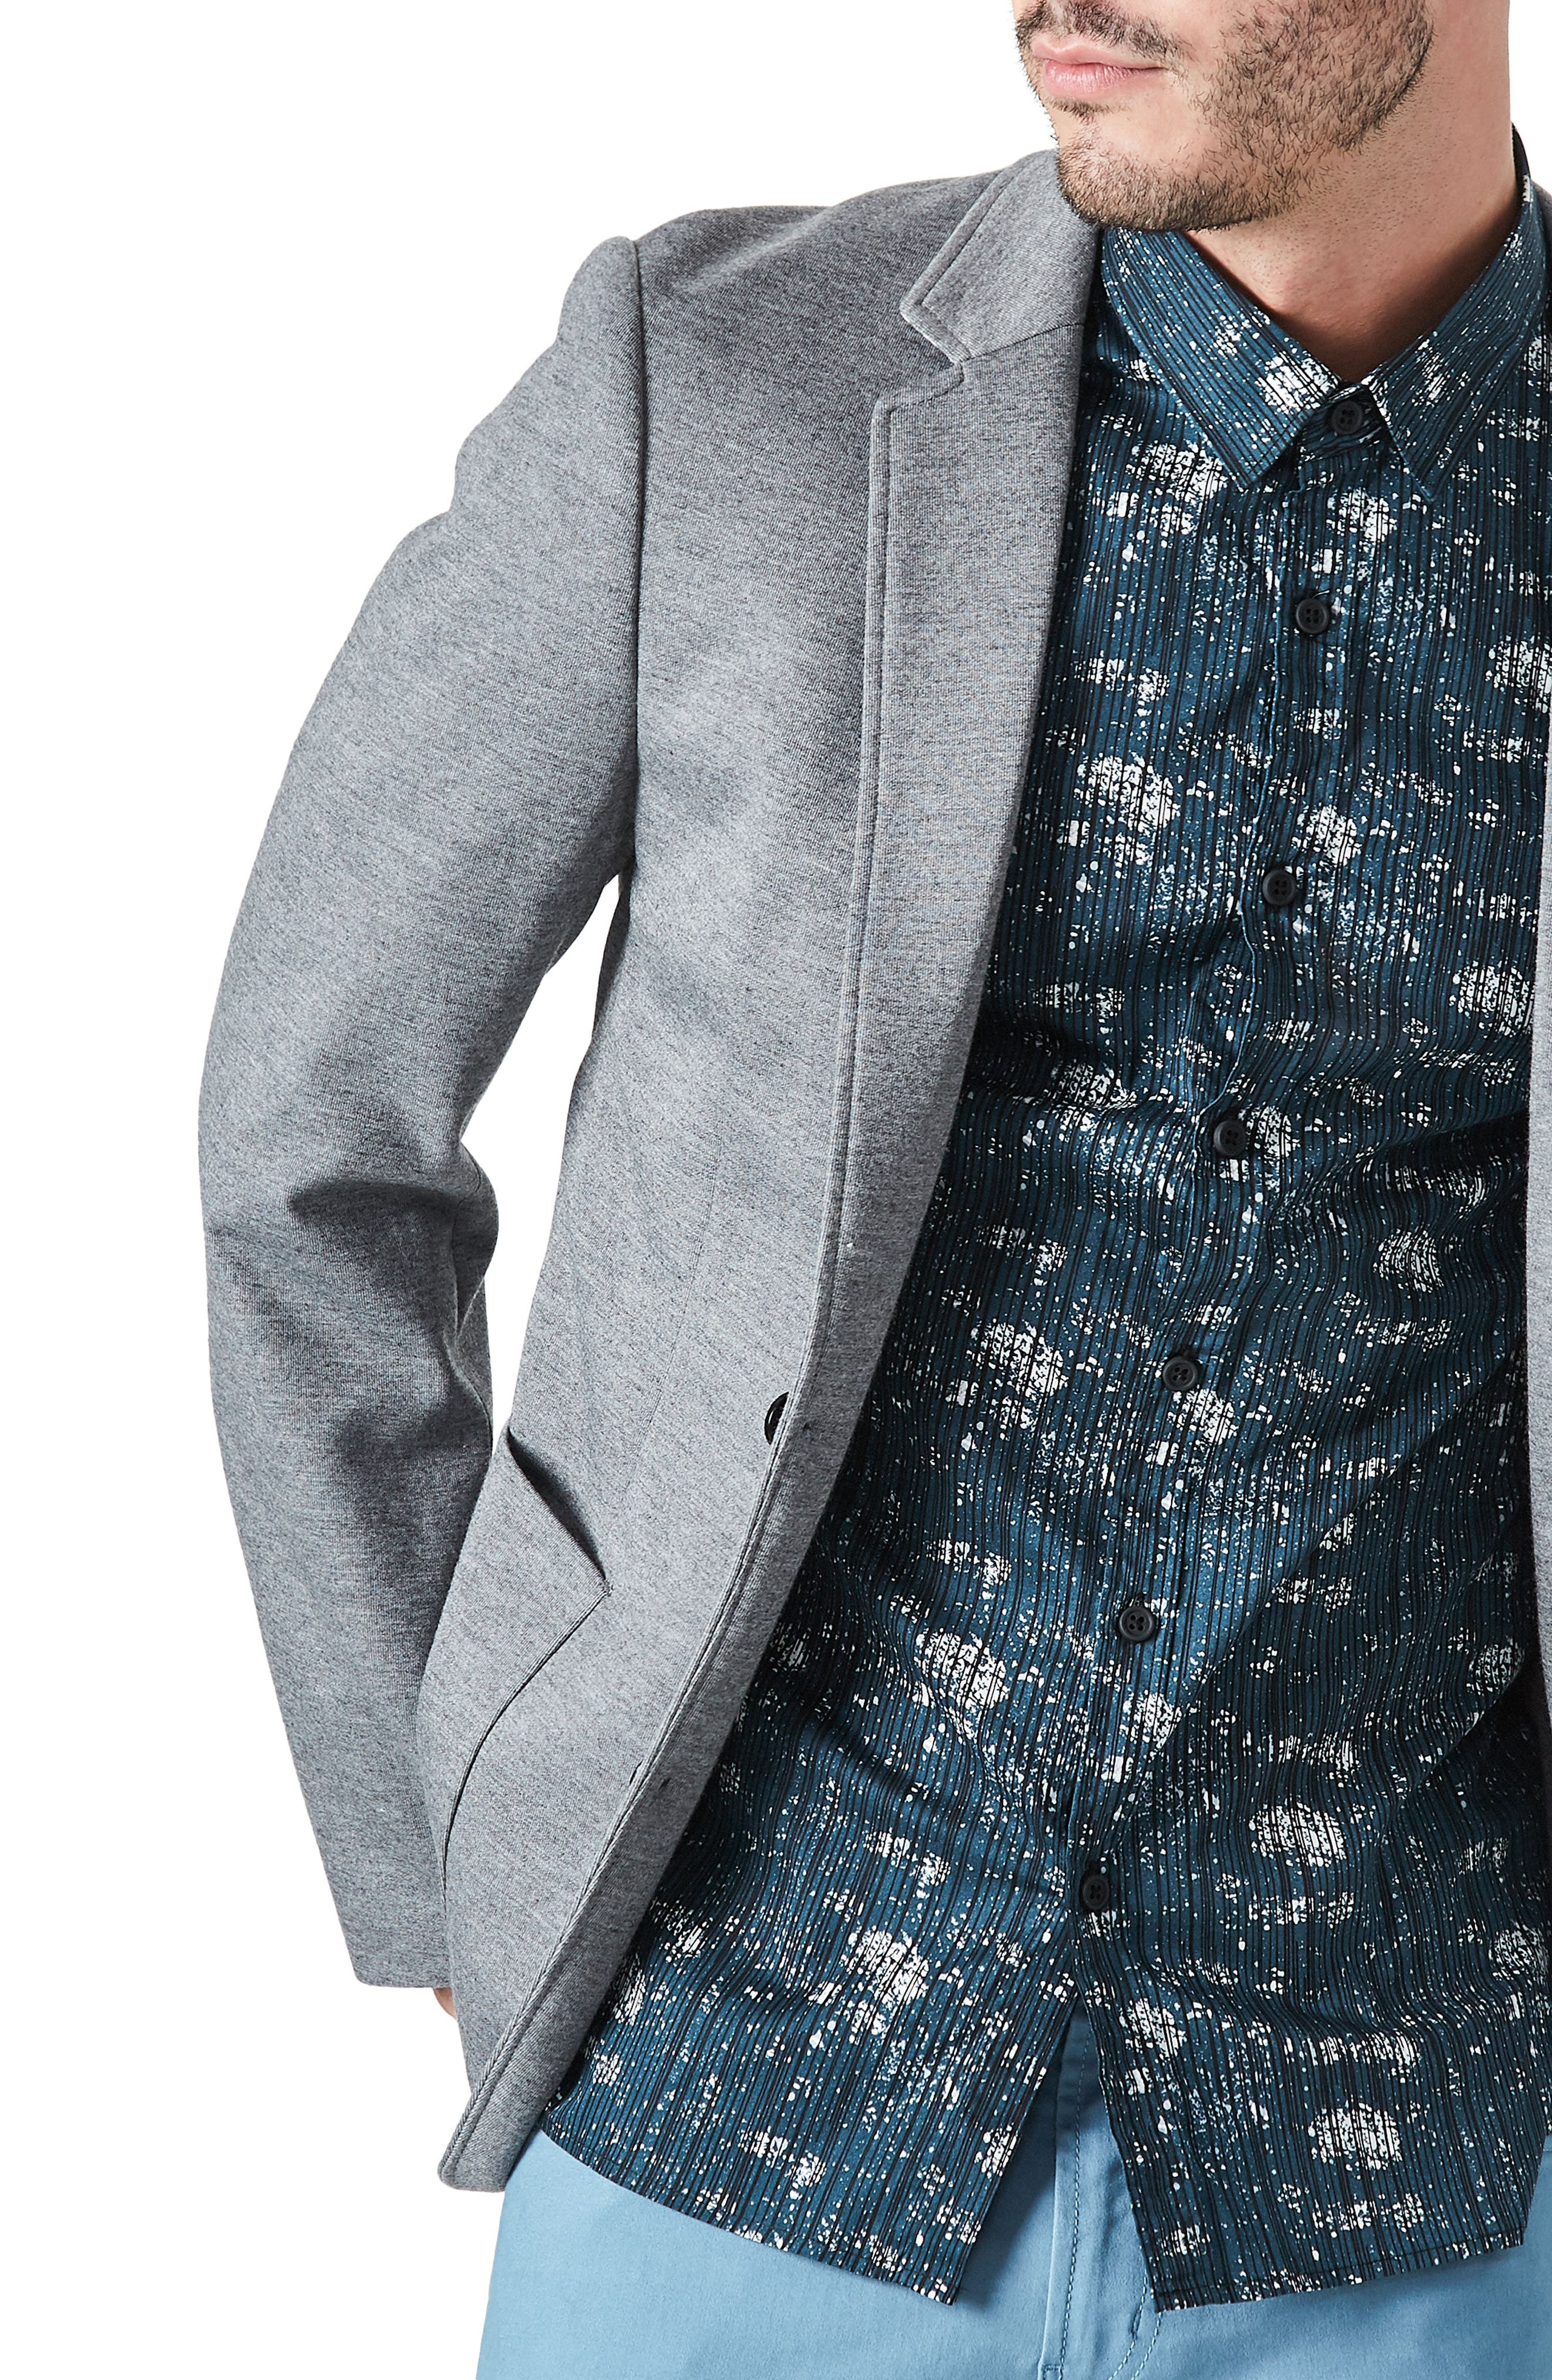 Urbino Casual Blazer,                             Alternate thumbnail 4, color,                             Grey